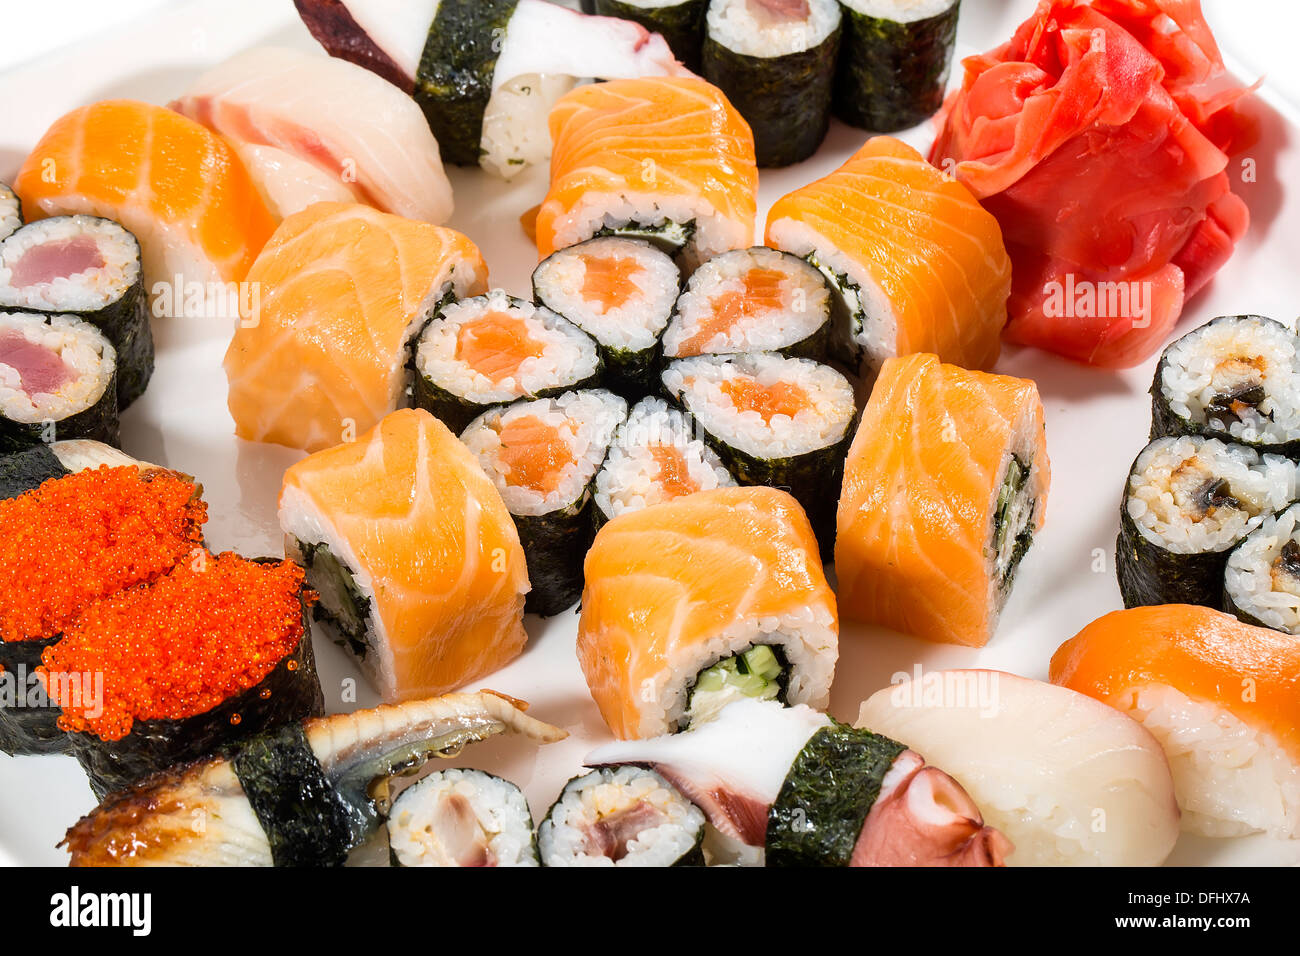 Japanese rolls in a restaurant with fish and vegetables - Stock Image